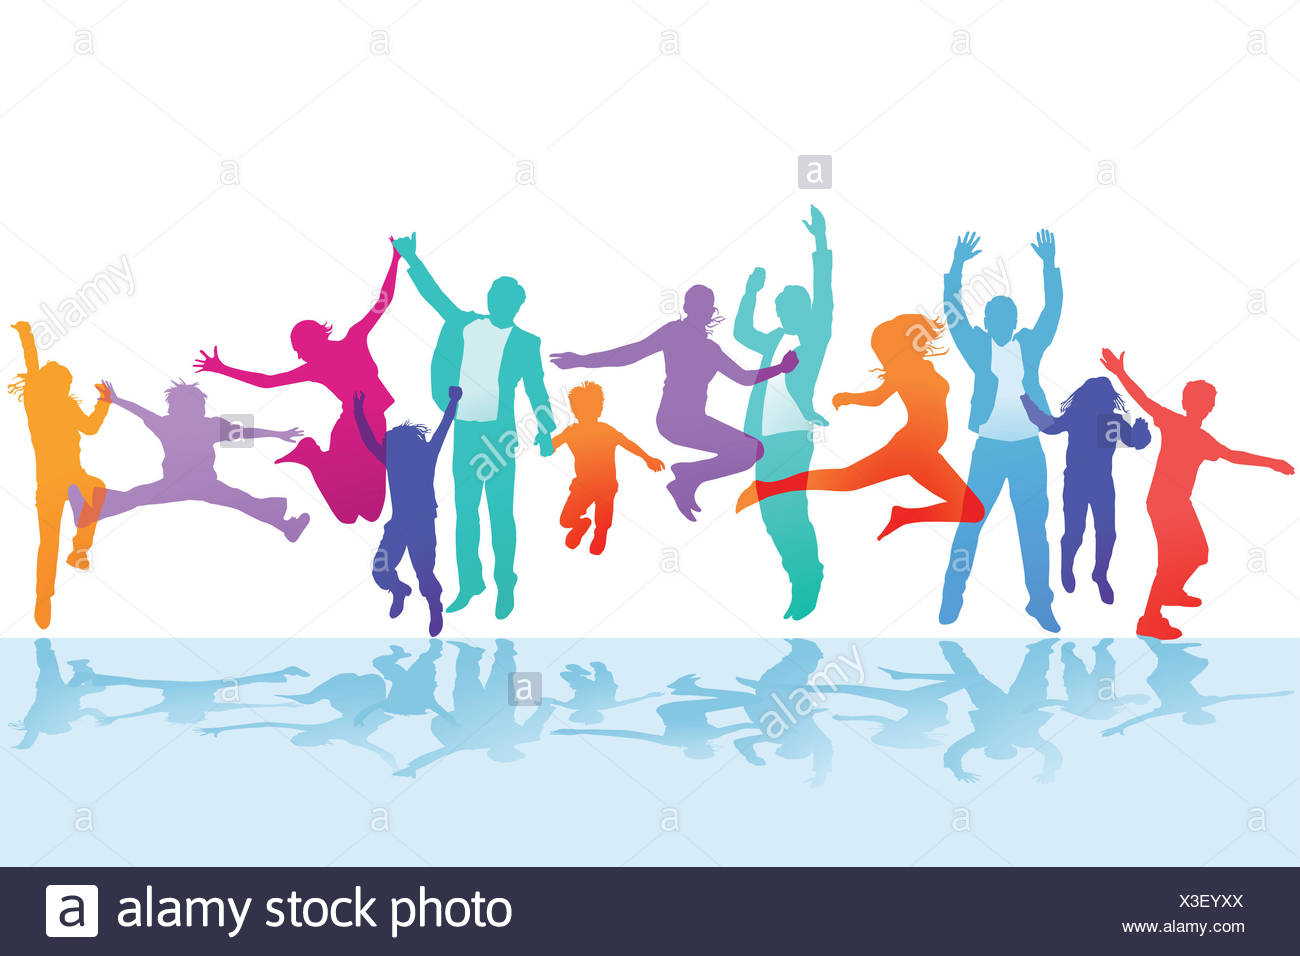 Families cheer and rejoice - Stock Image